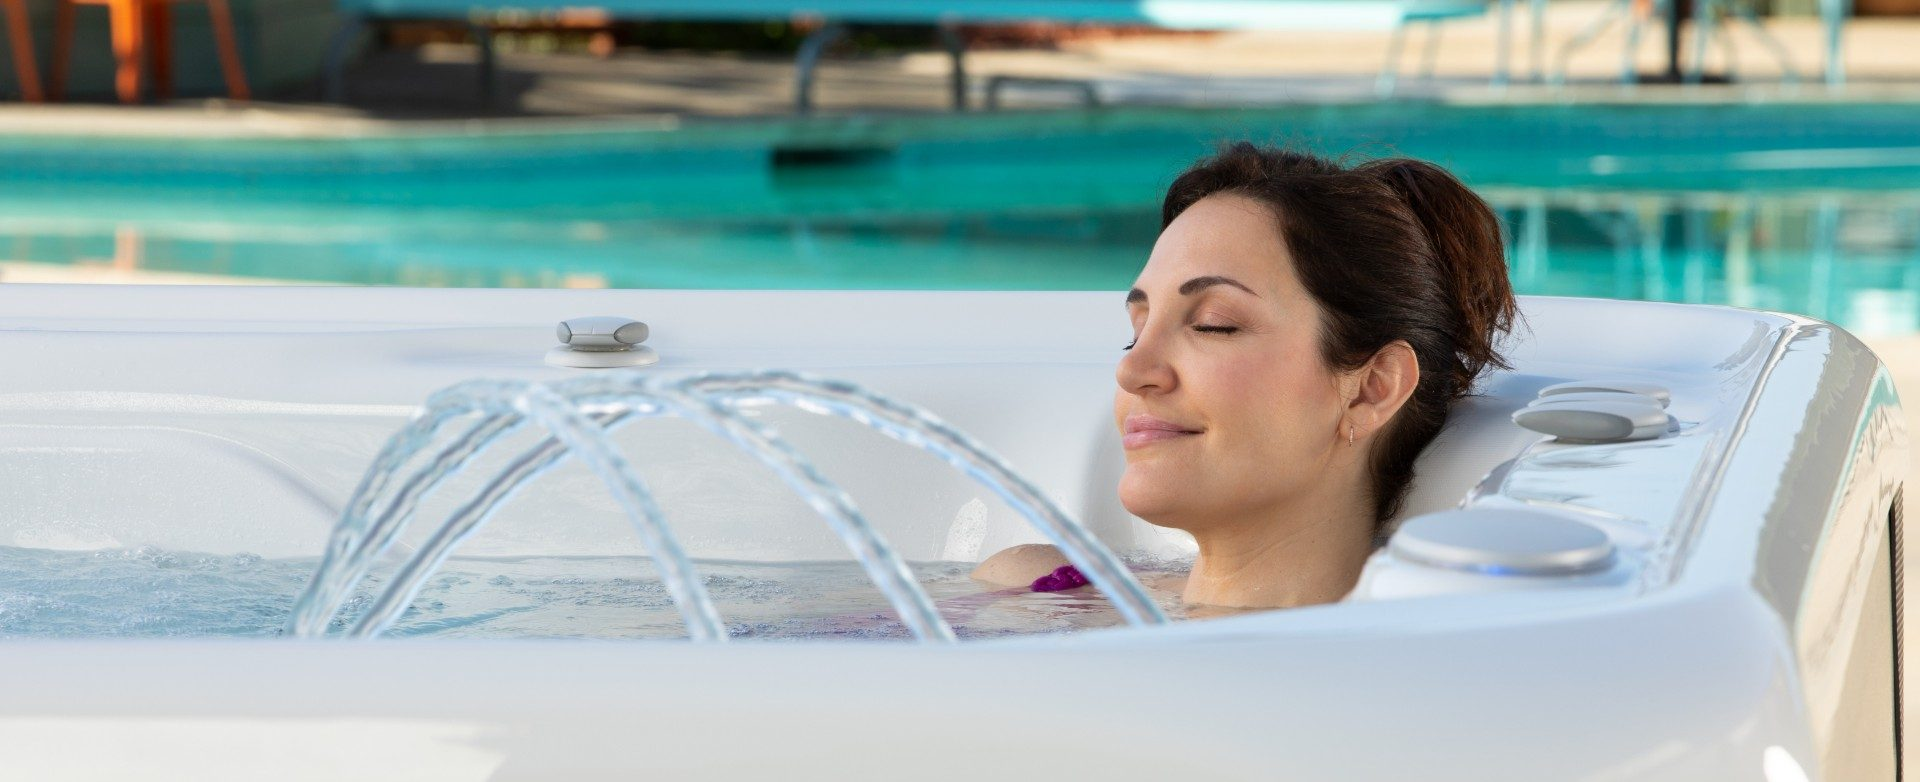 Qualities to Look for in a Pool & Spa Service Company